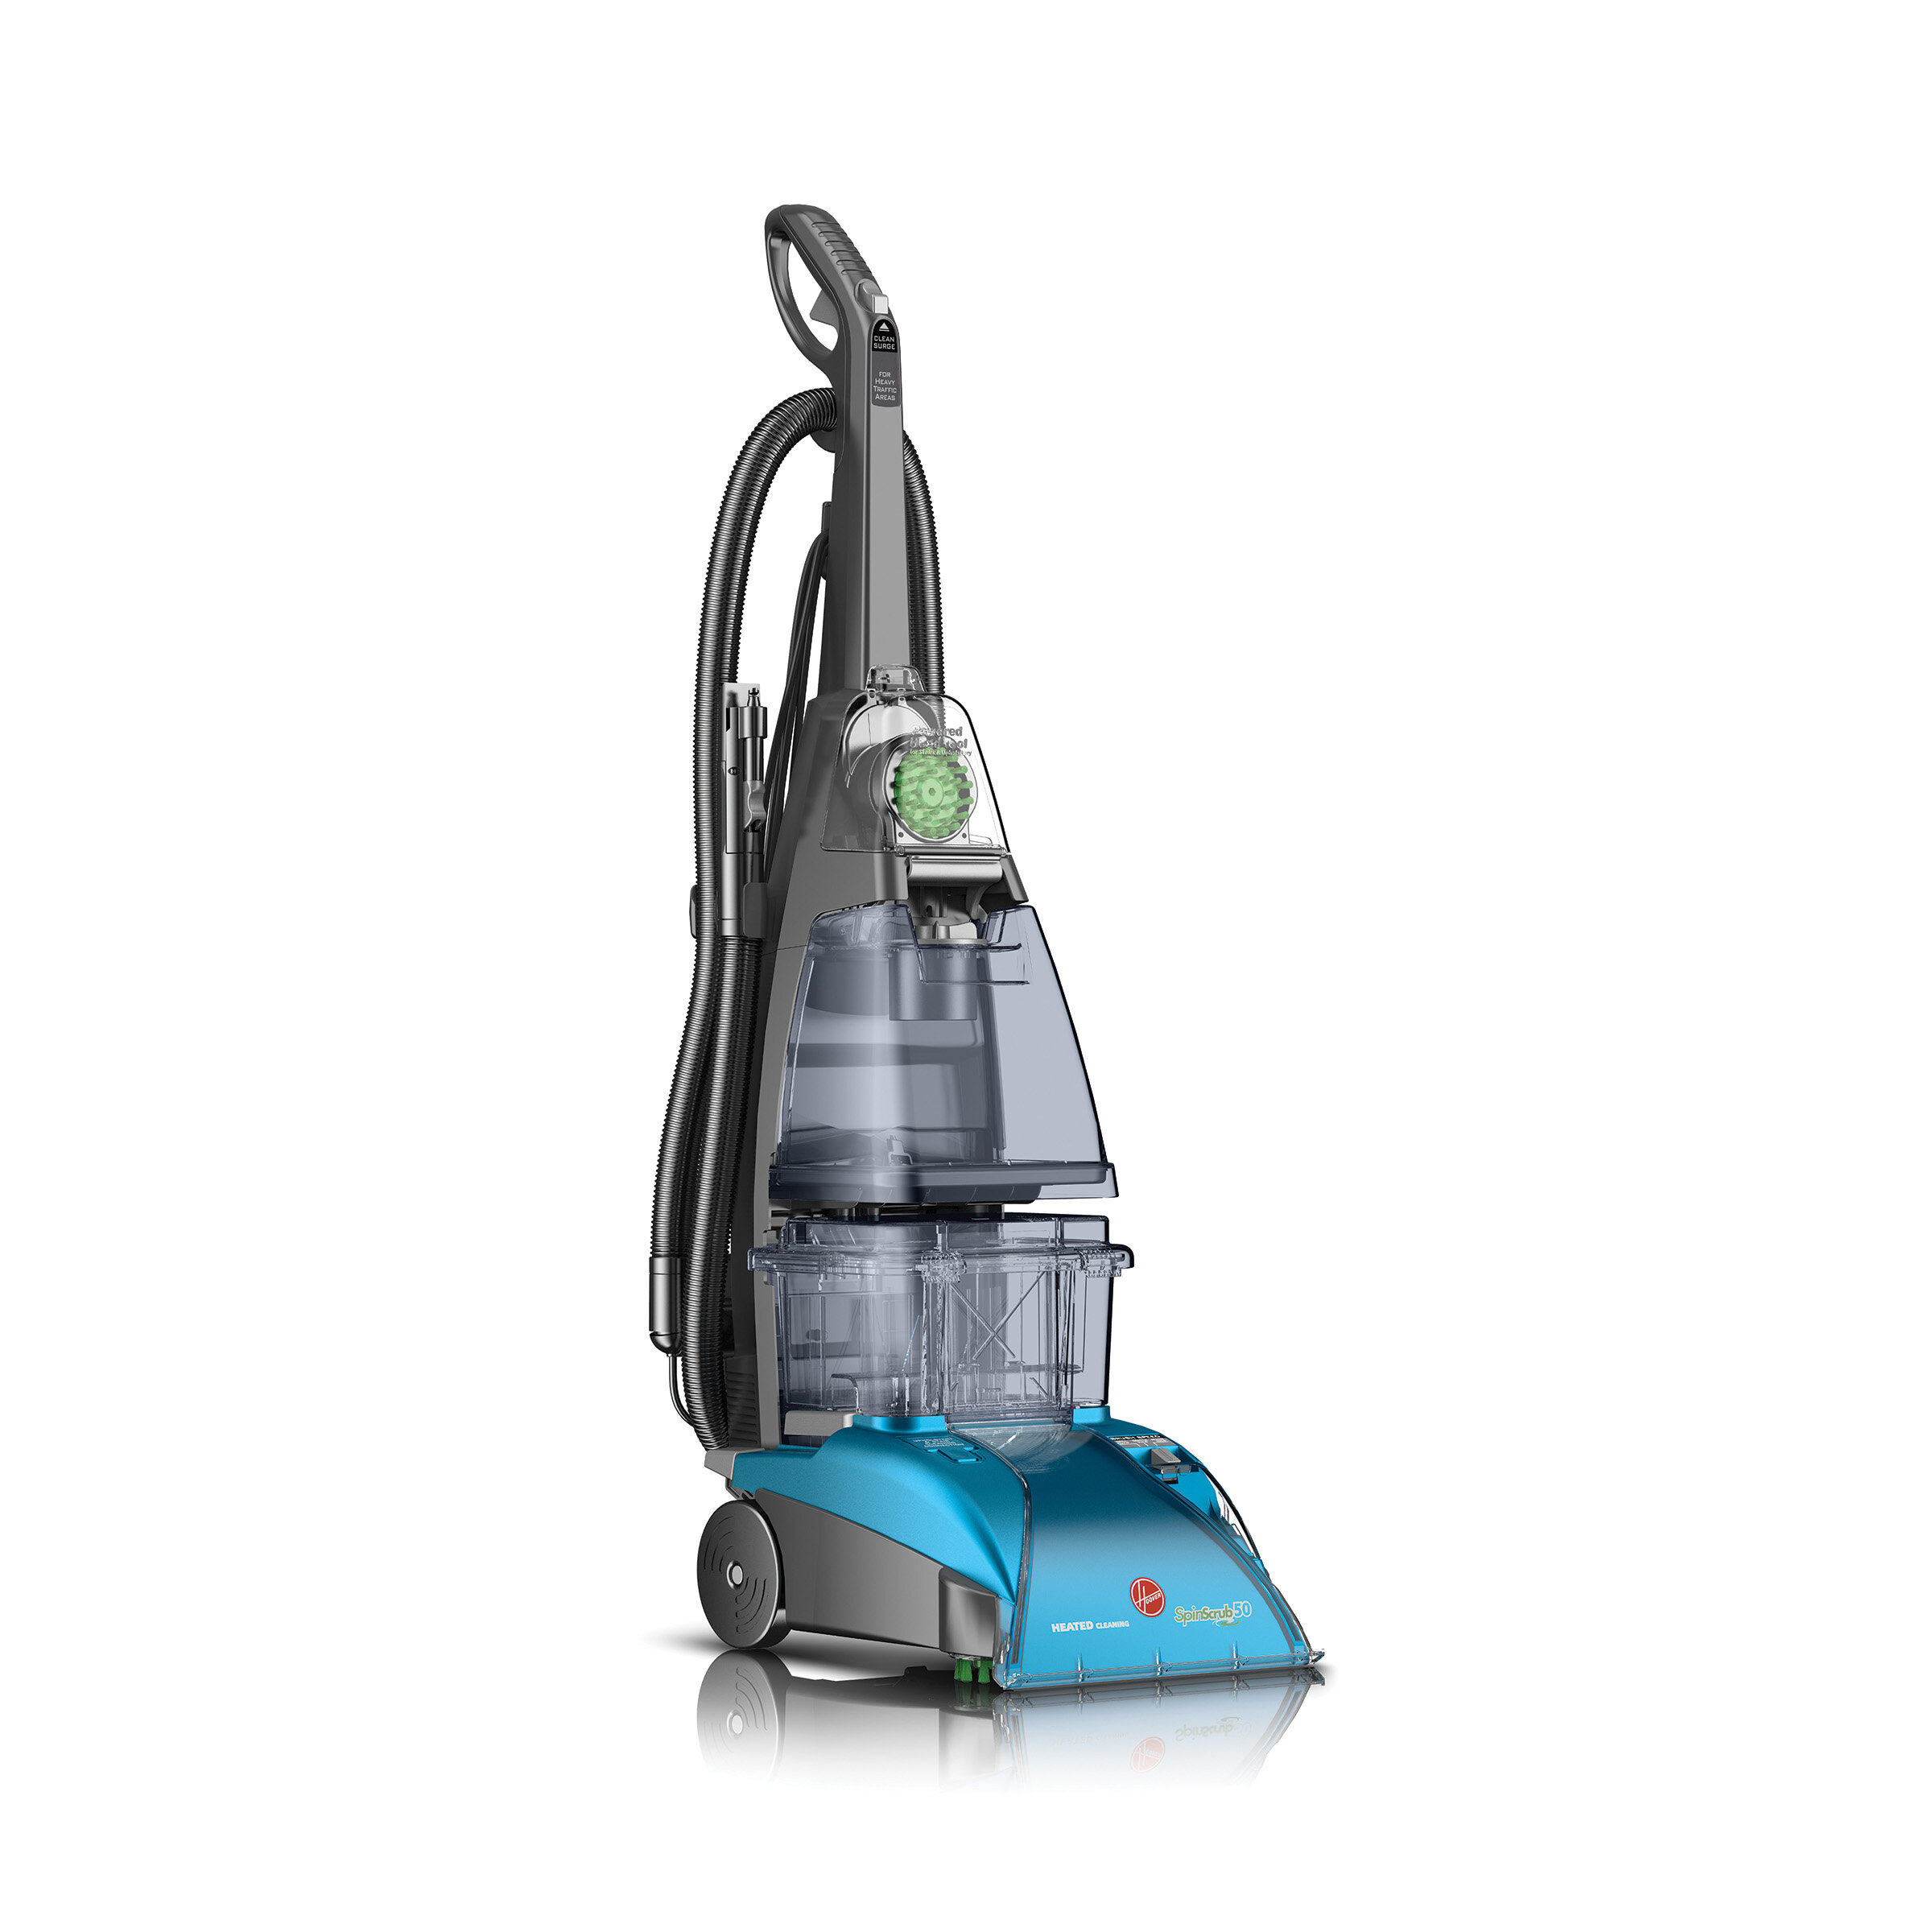 Hoover wayfair vacuum with clean surge by hoover dailygadgetfo Images